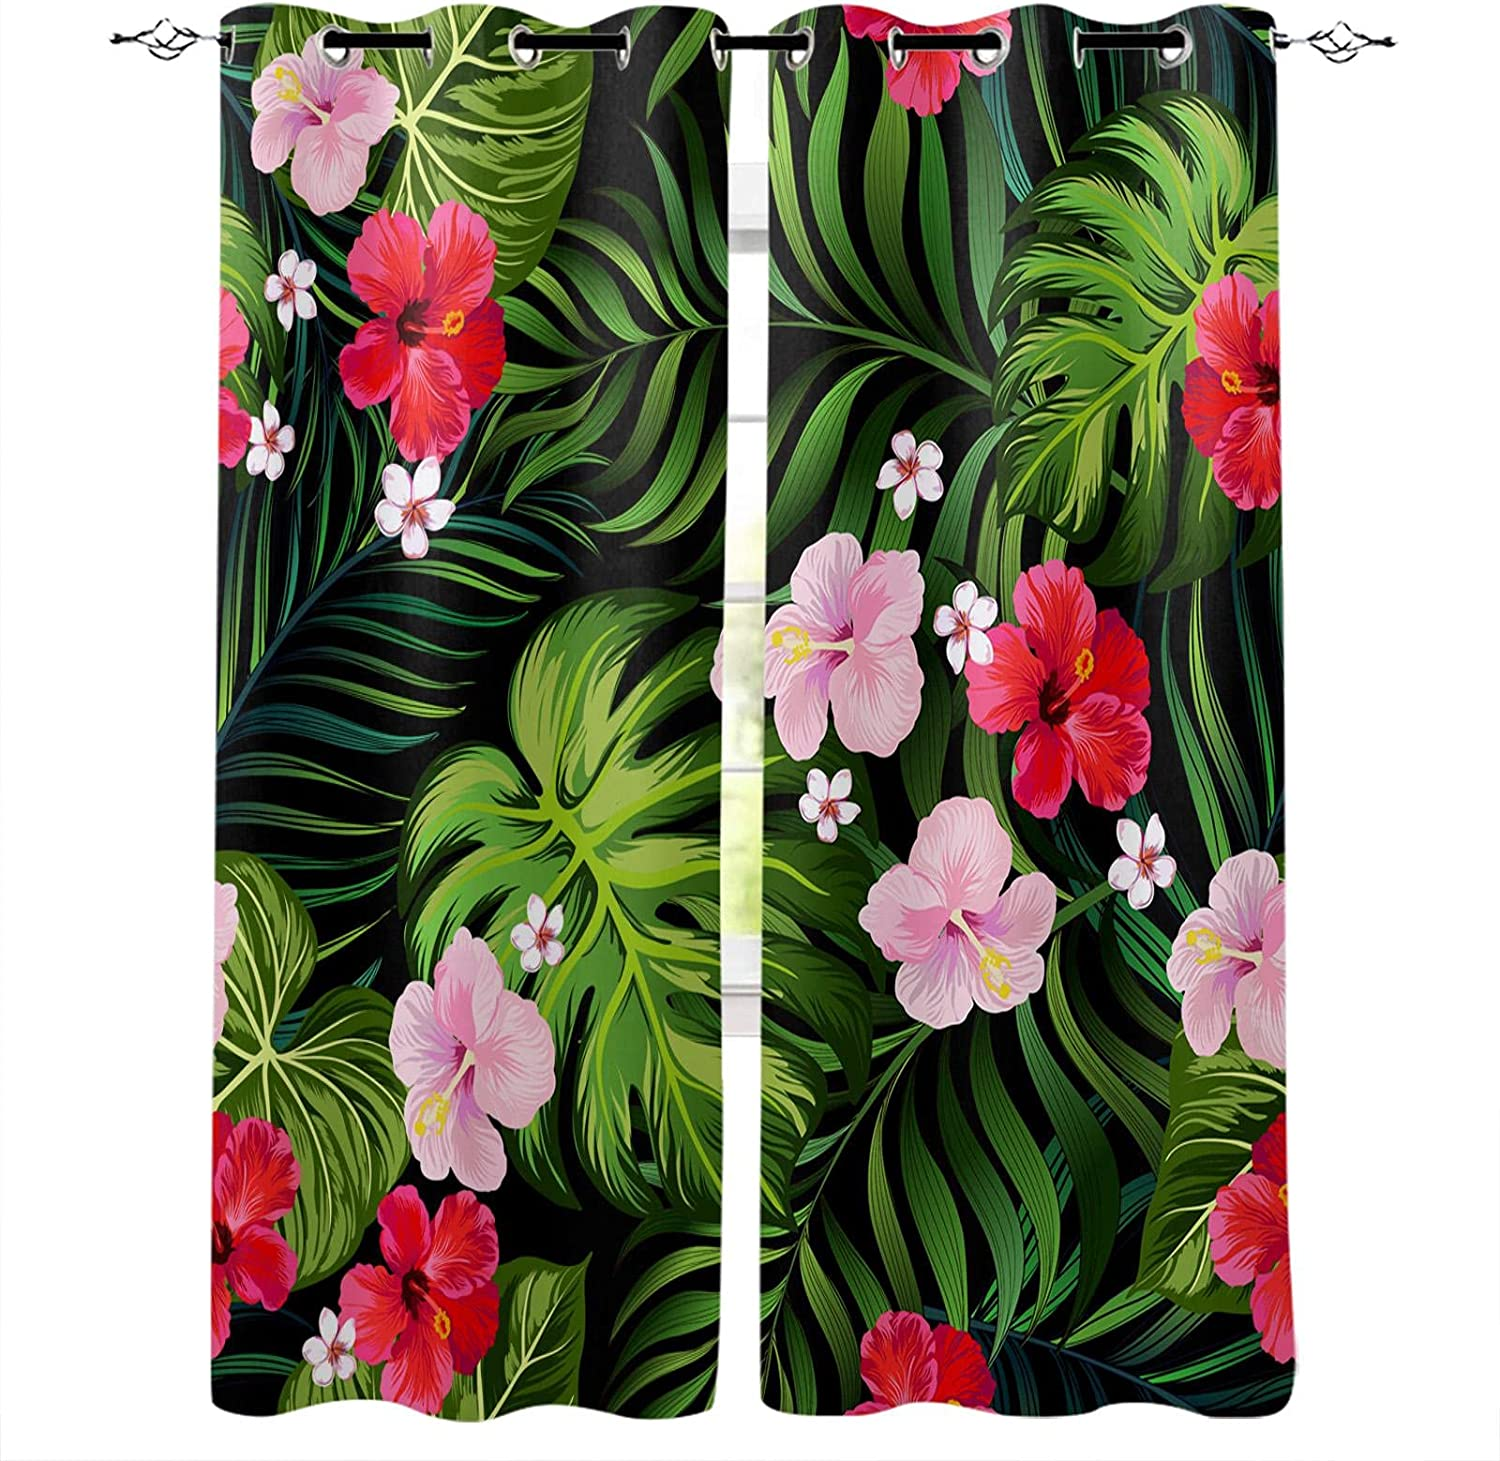 ADKMC Blackout Curtain for Bedroom Flowers Plants Ranking Challenge the lowest price of Japan integrated 1st place Green - Three-